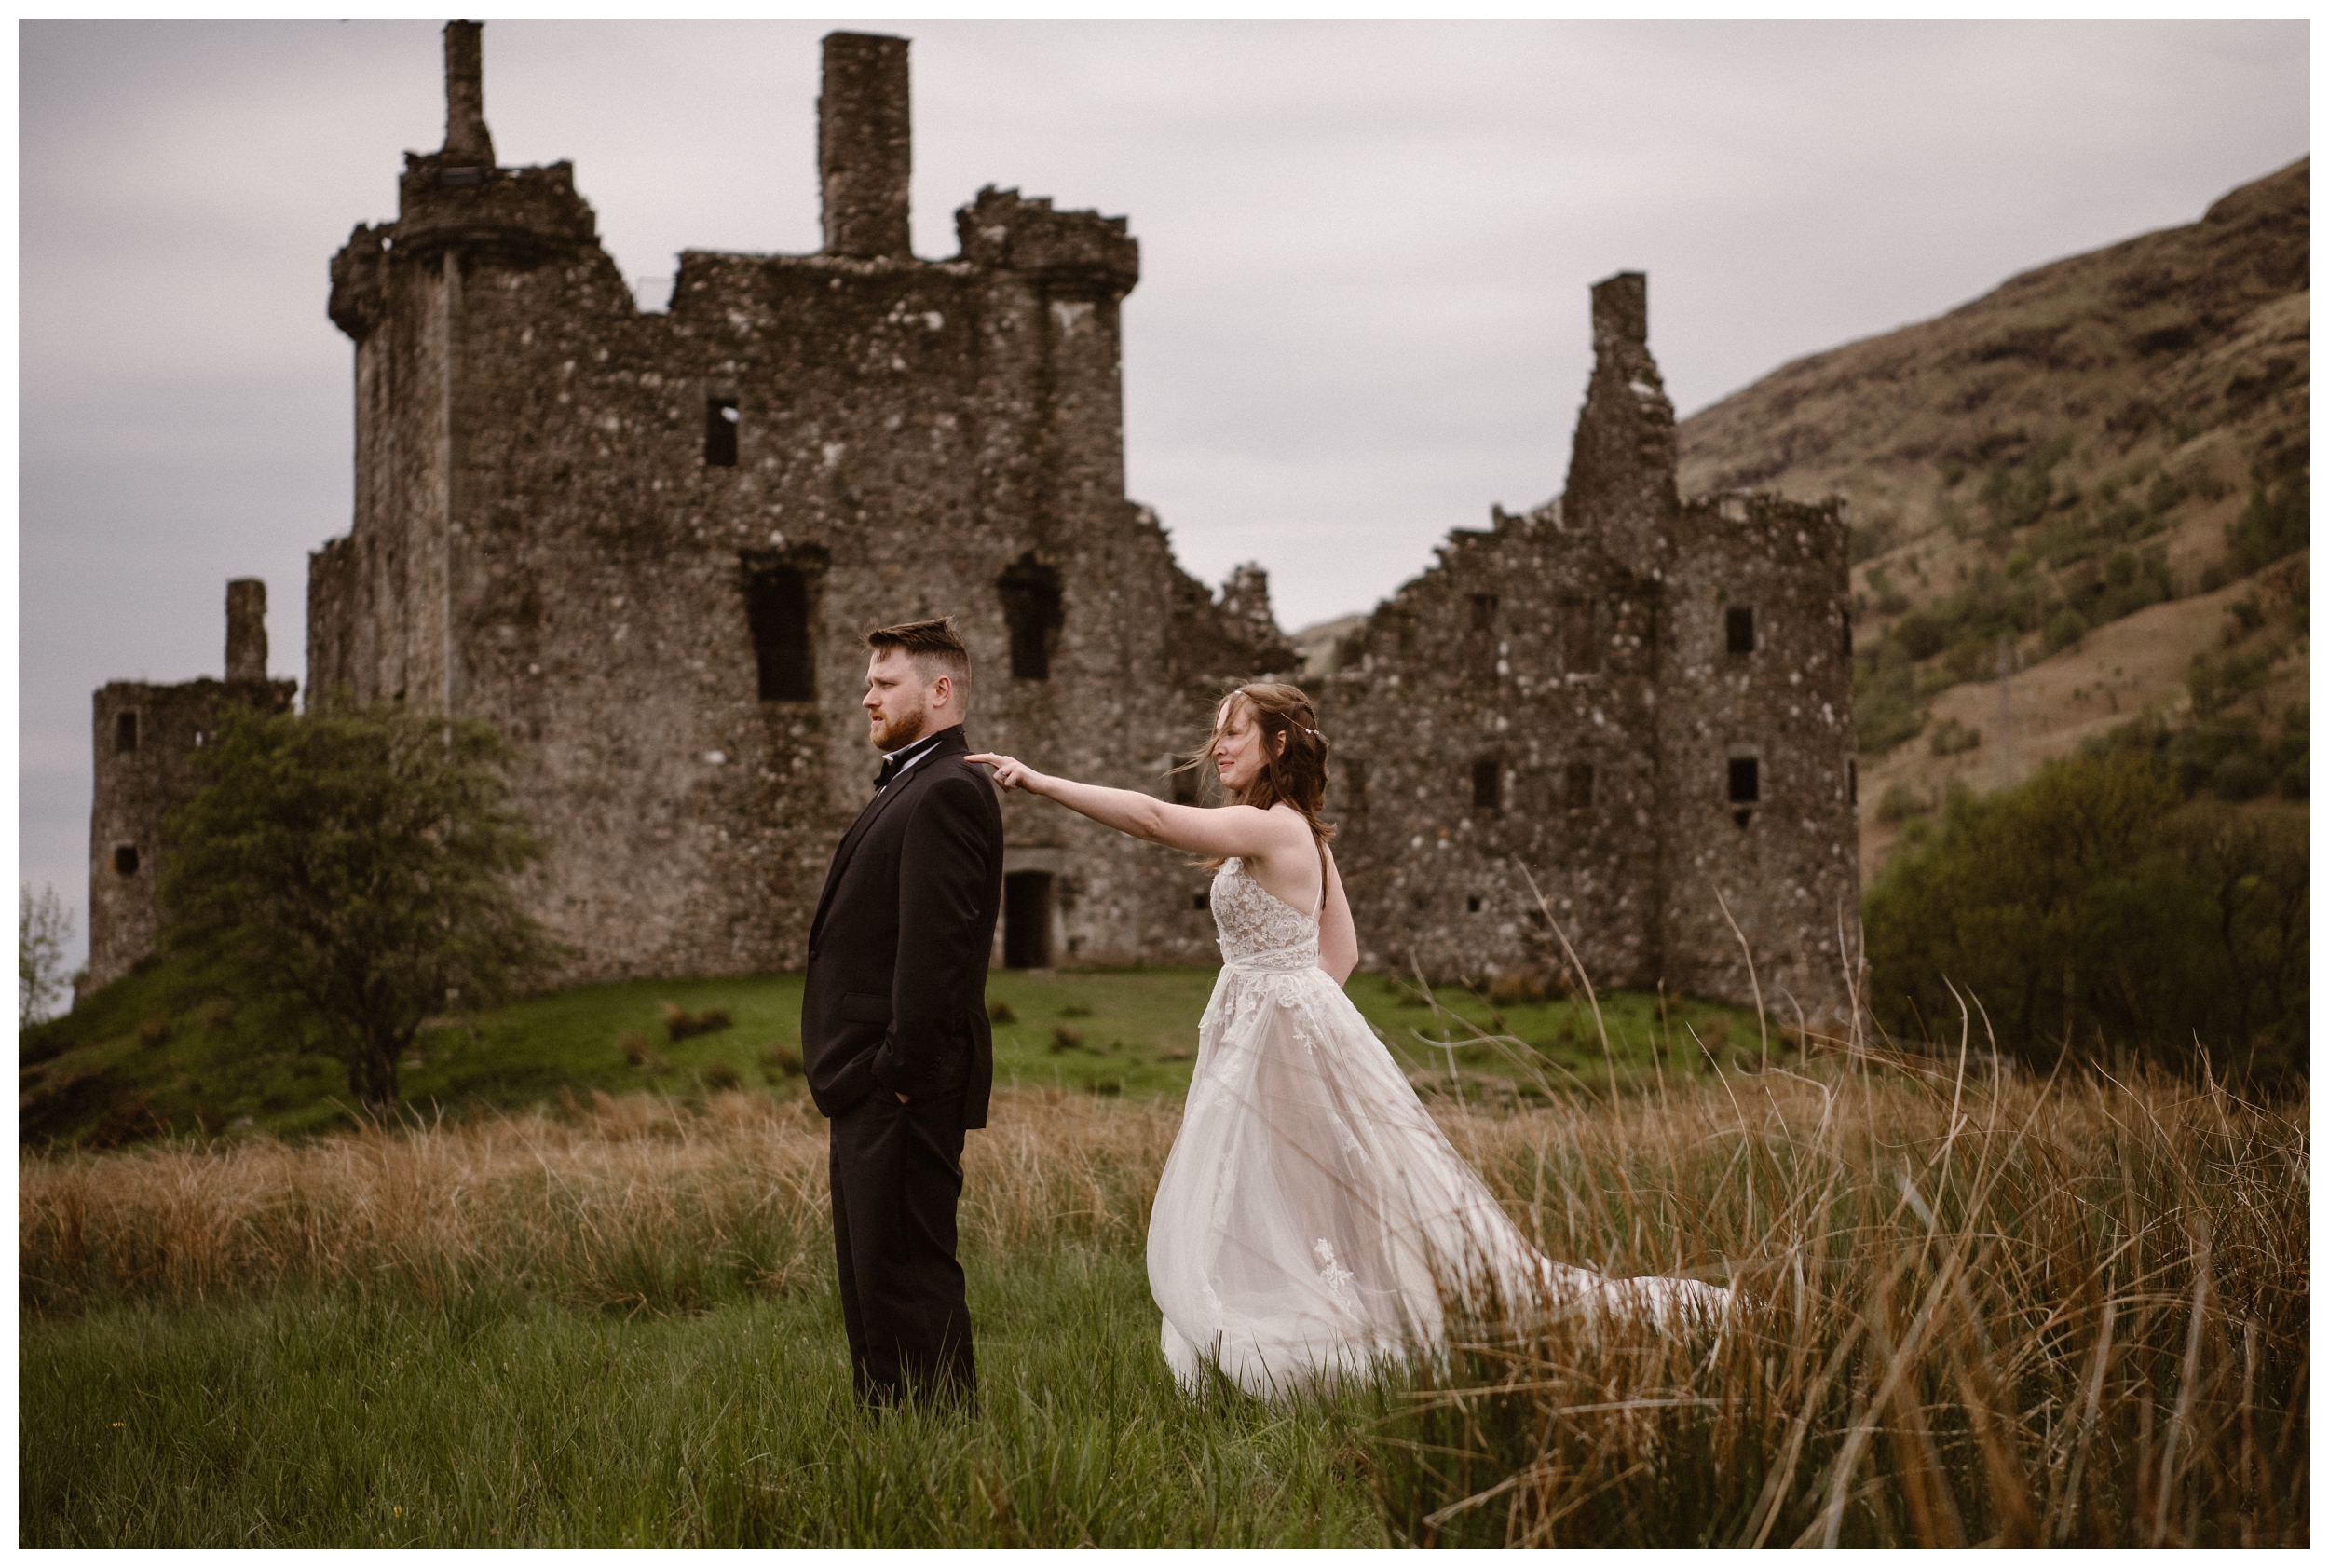 The ruins of Kilchurn Castle in Lochawe in the Scottish Highlands are behind Elissa and Daniel during their first look before their destination elopement. Photo by Maddie Mae, Adventure Instead.